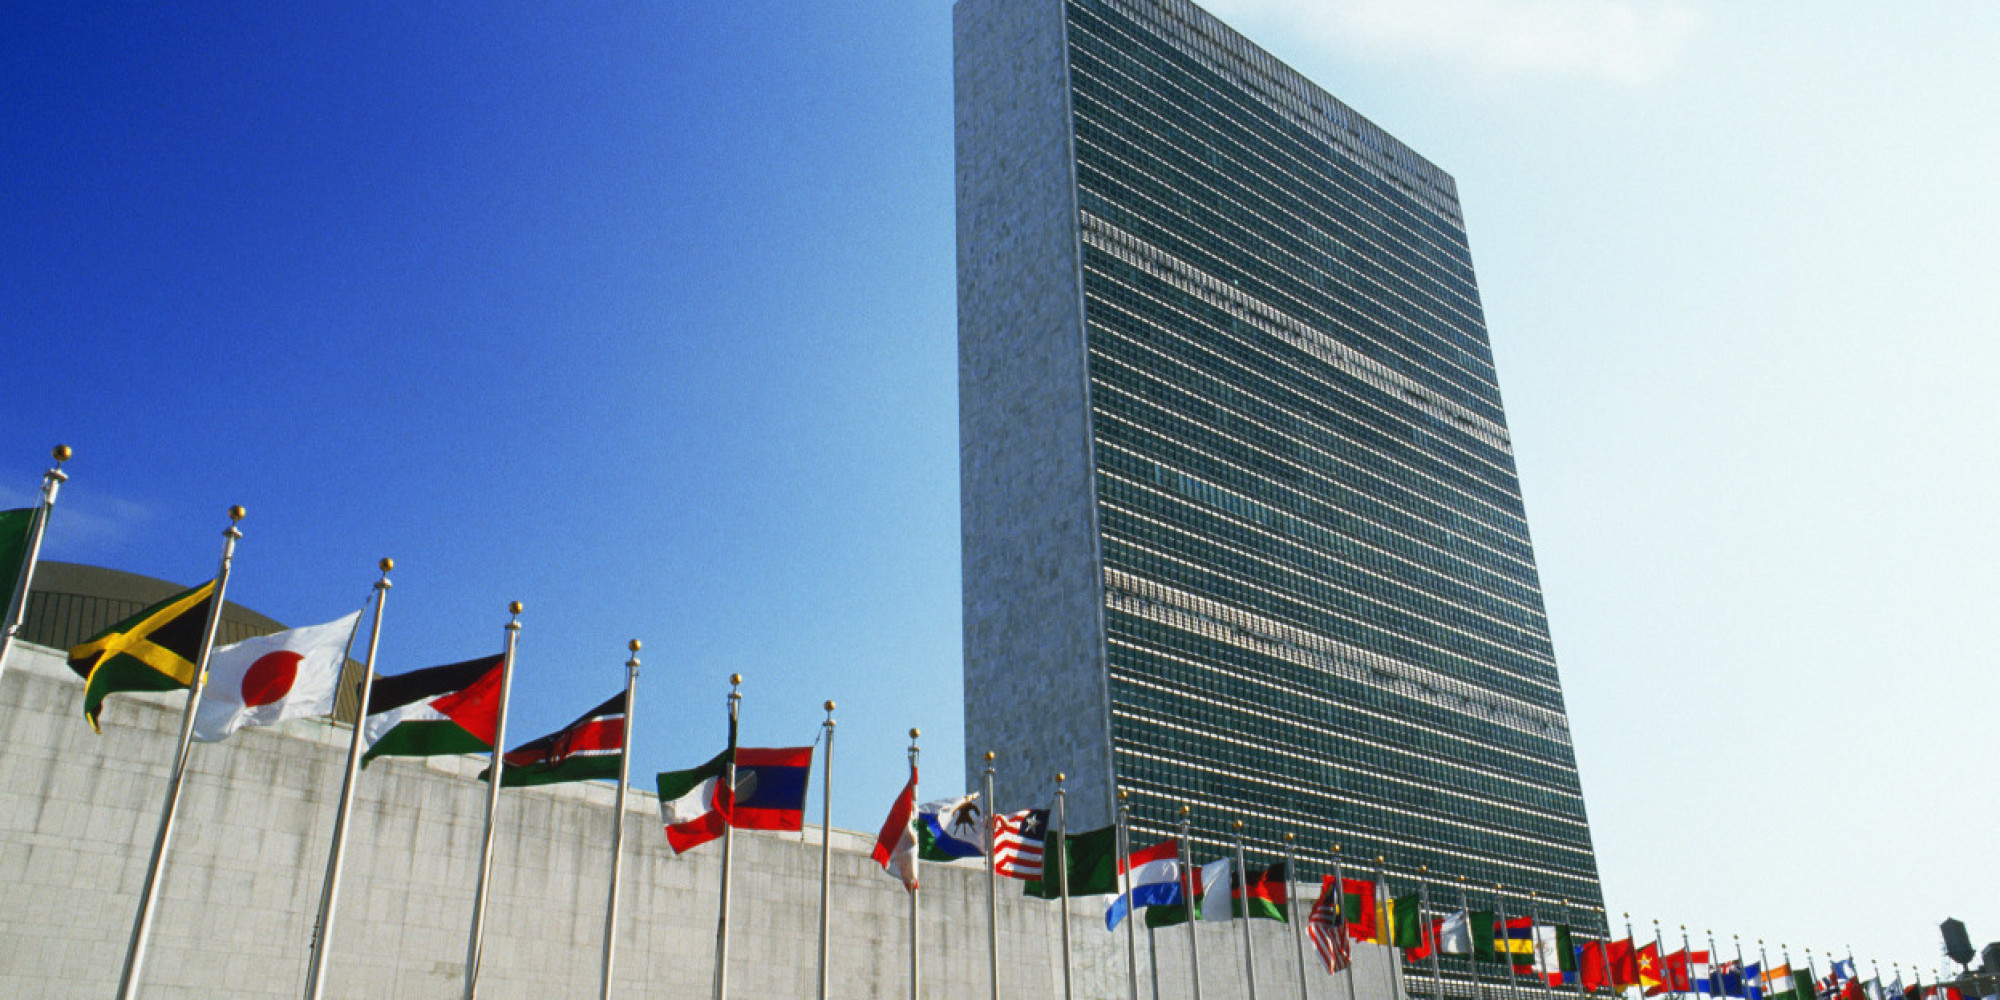 nepali youth inspires the world from the un headquarter